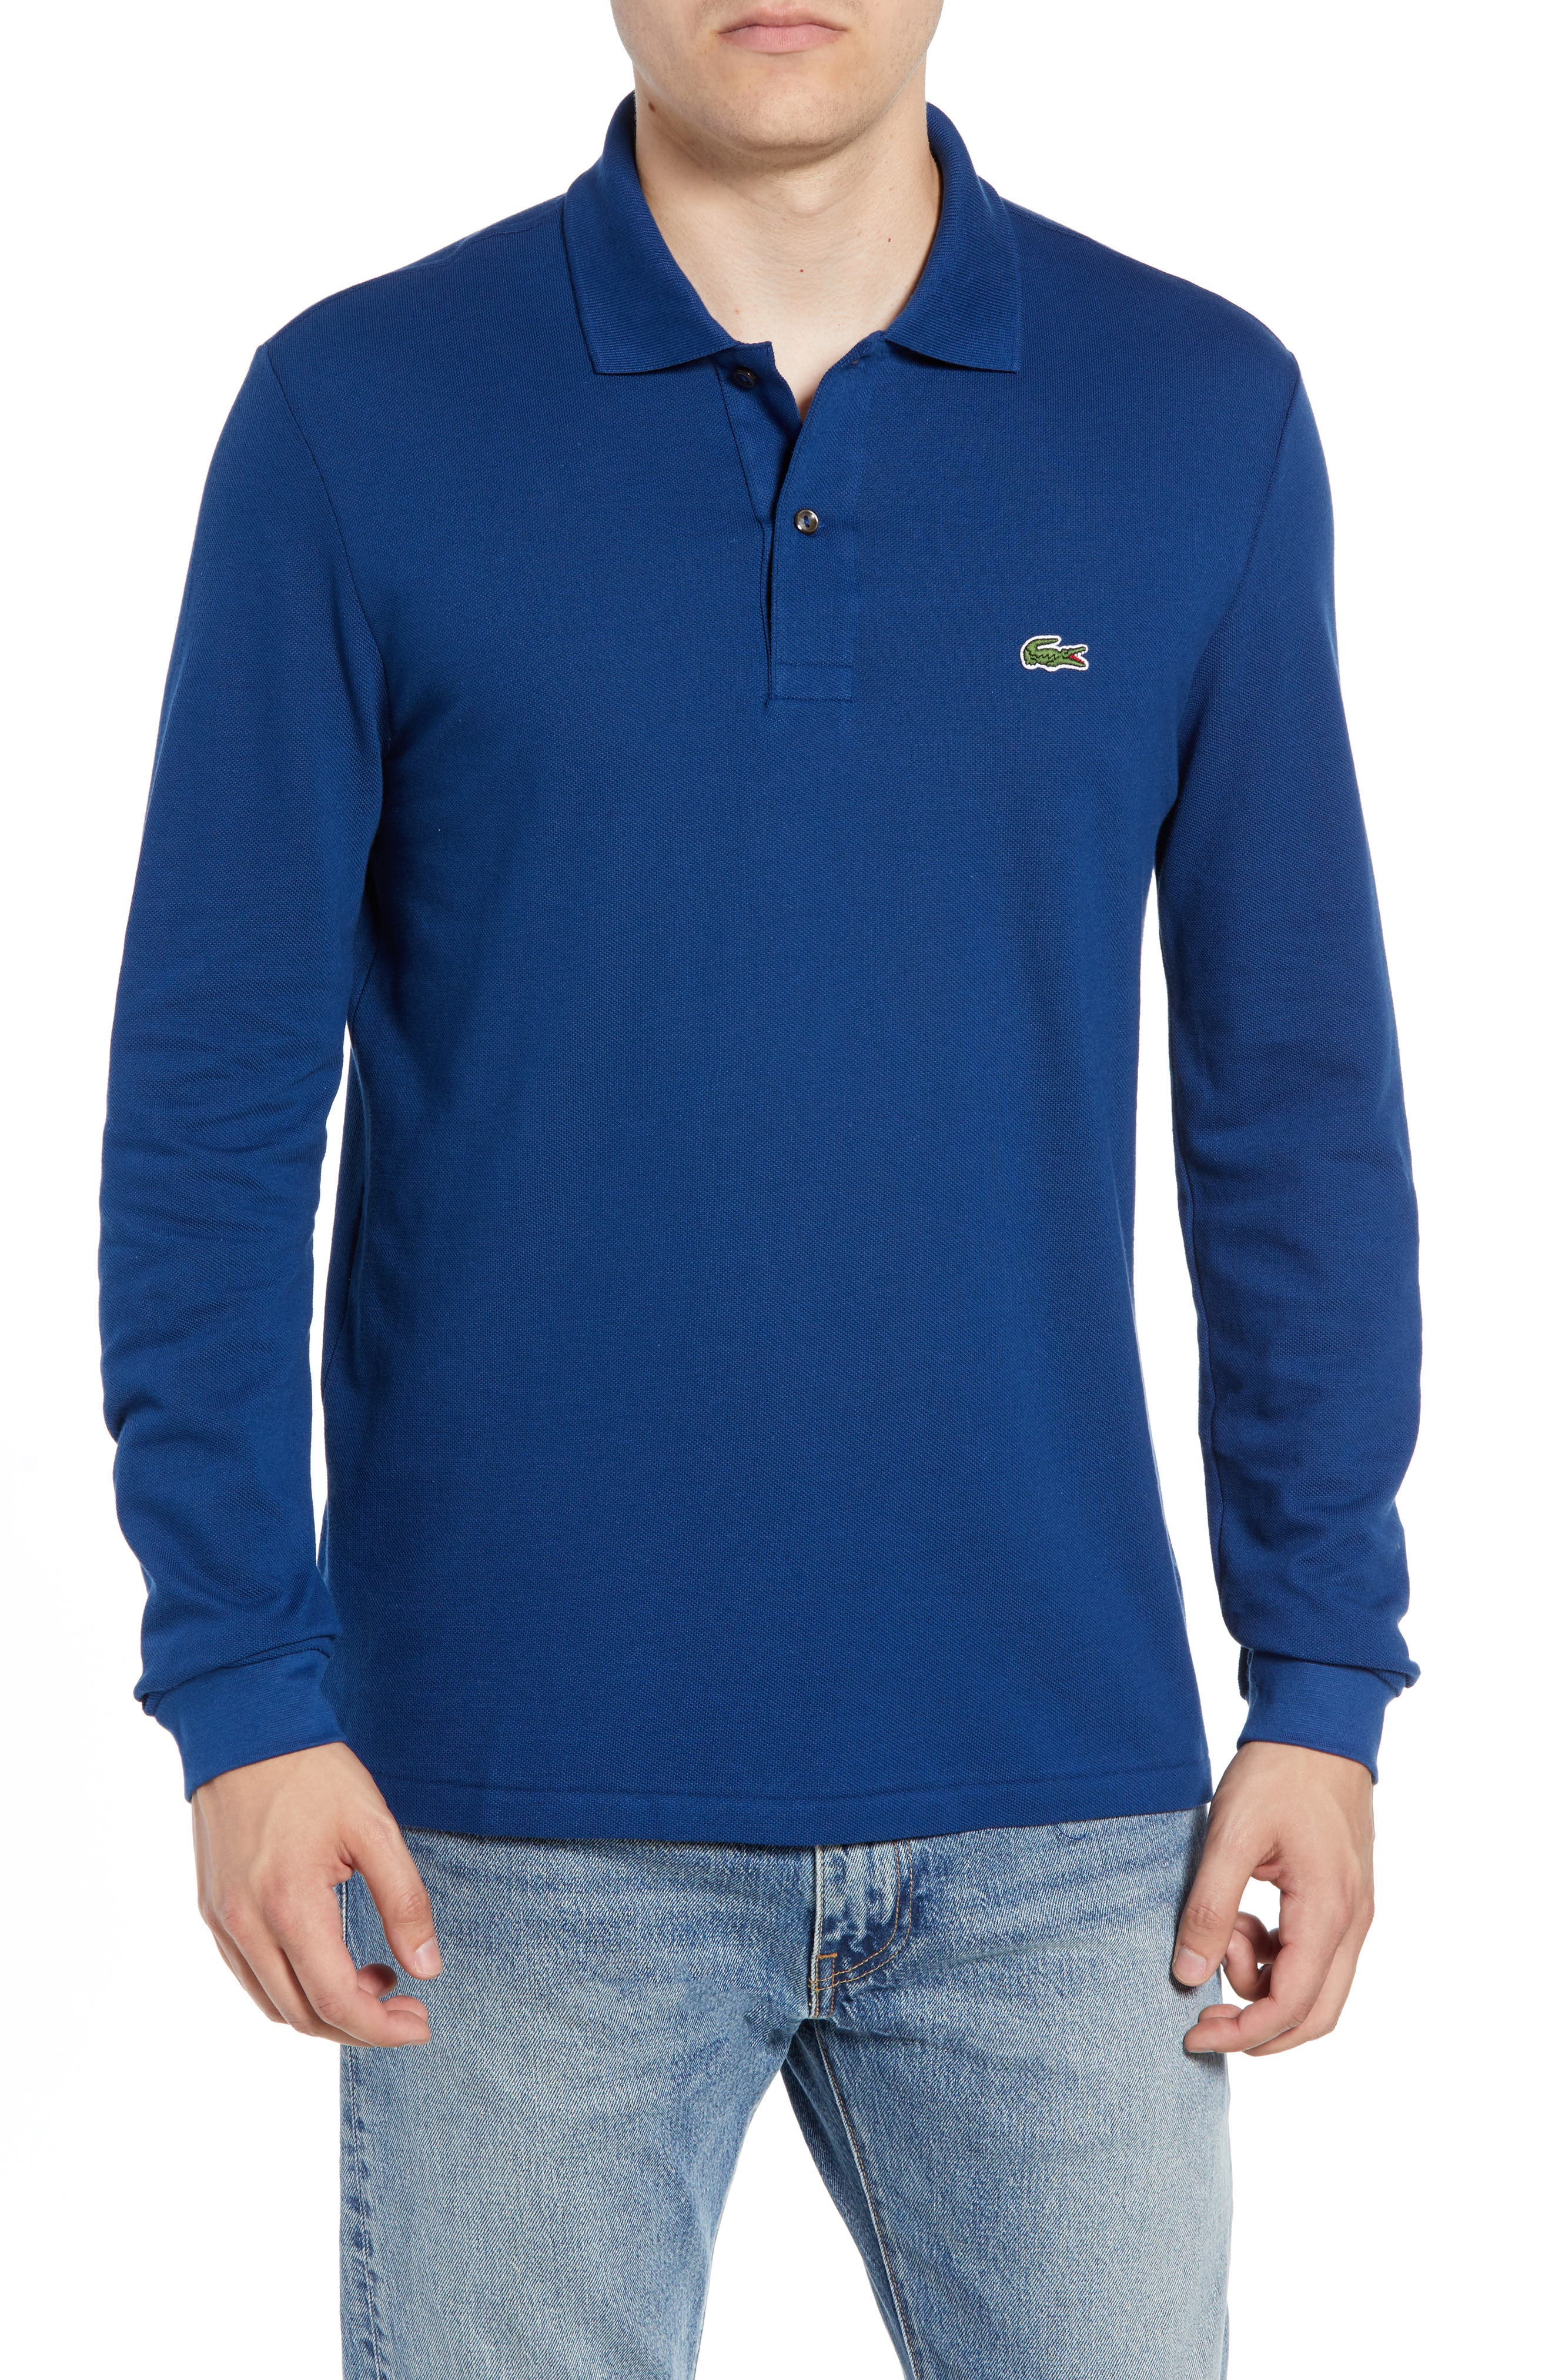 49025fe7 Fake Lacoste Polo Shirts Turkey – EDGE Engineering and Consulting ...